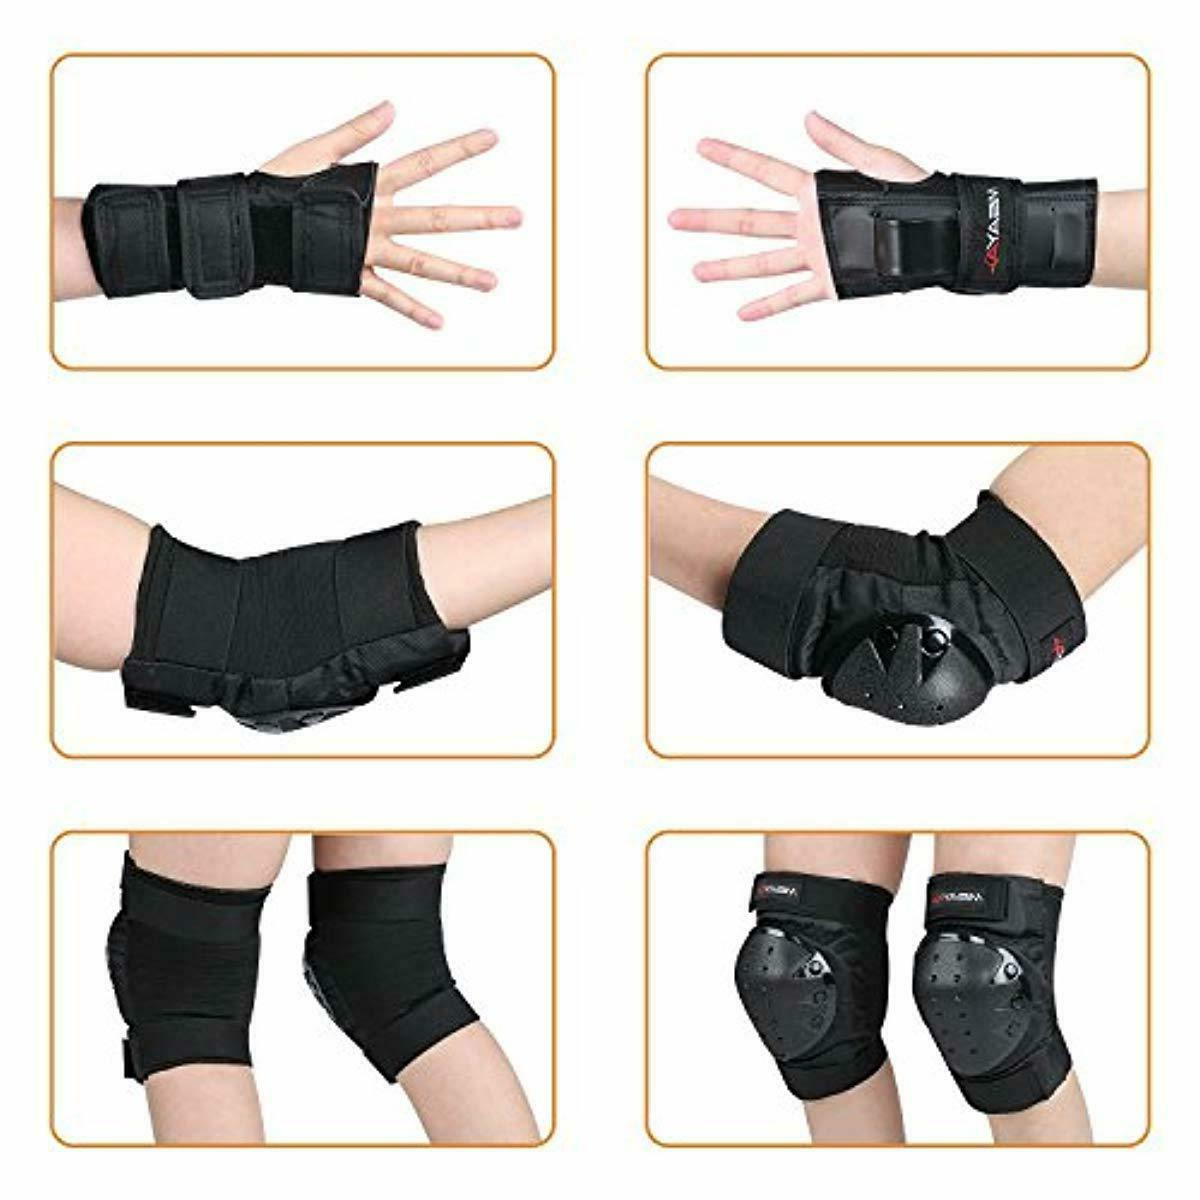 Knee Pads Elbow Wrist Guards 3 1 Protective for